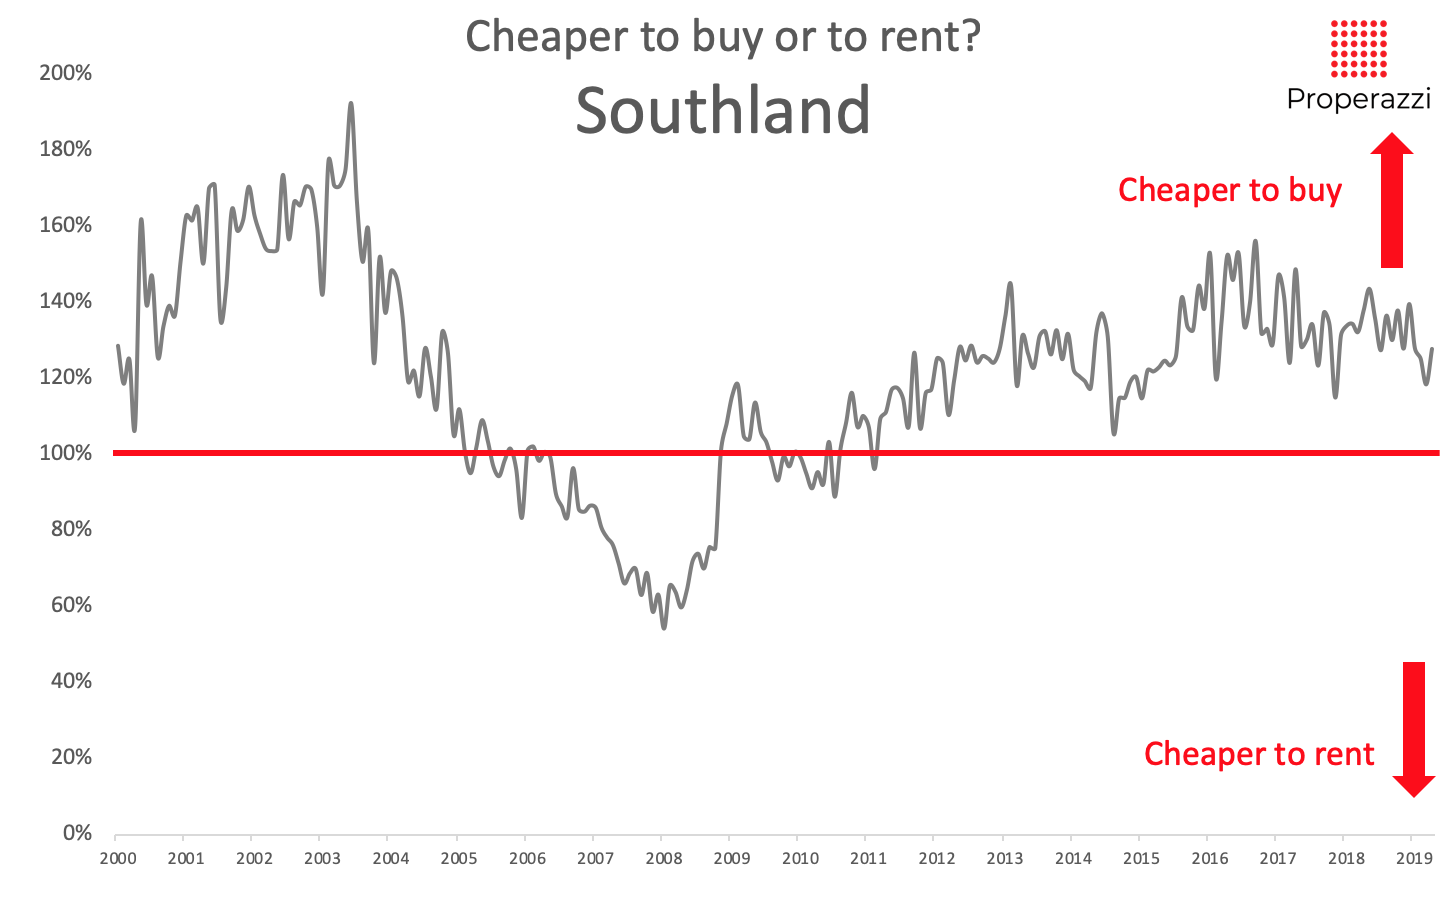 To buy or to rent in Southland - May 2019